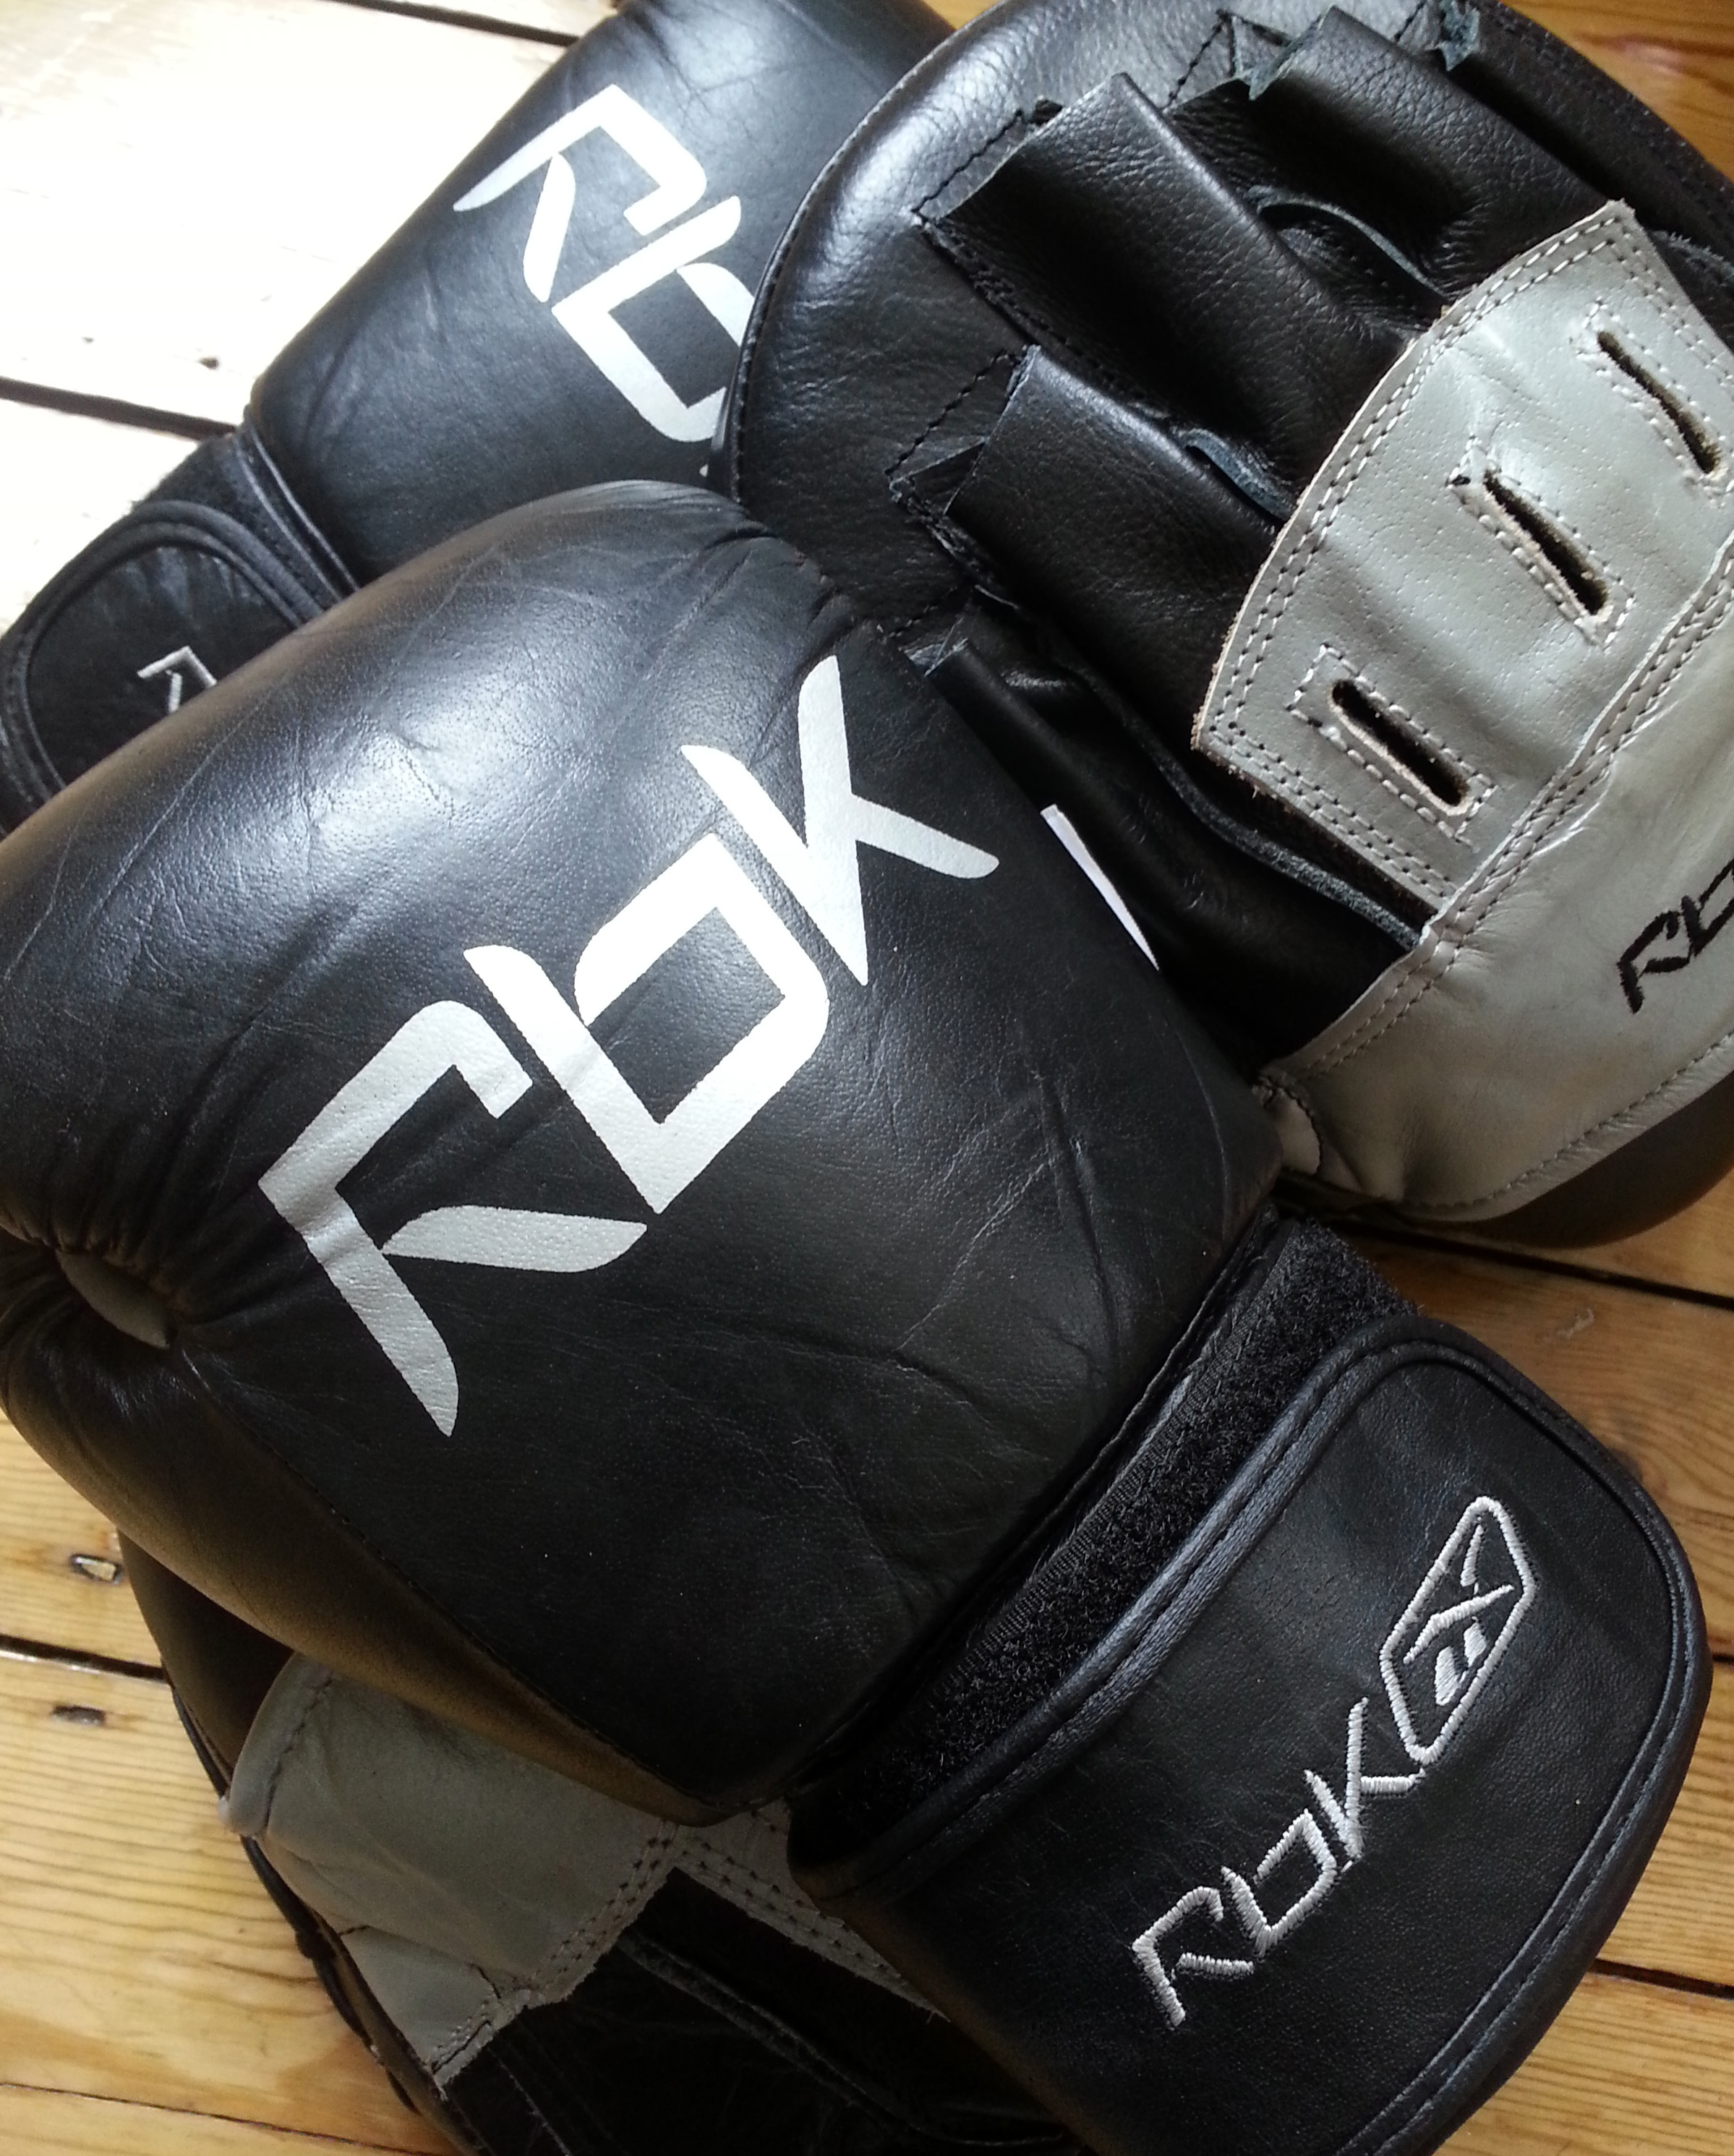 Pad boxing training with Hillcliff Personal Training